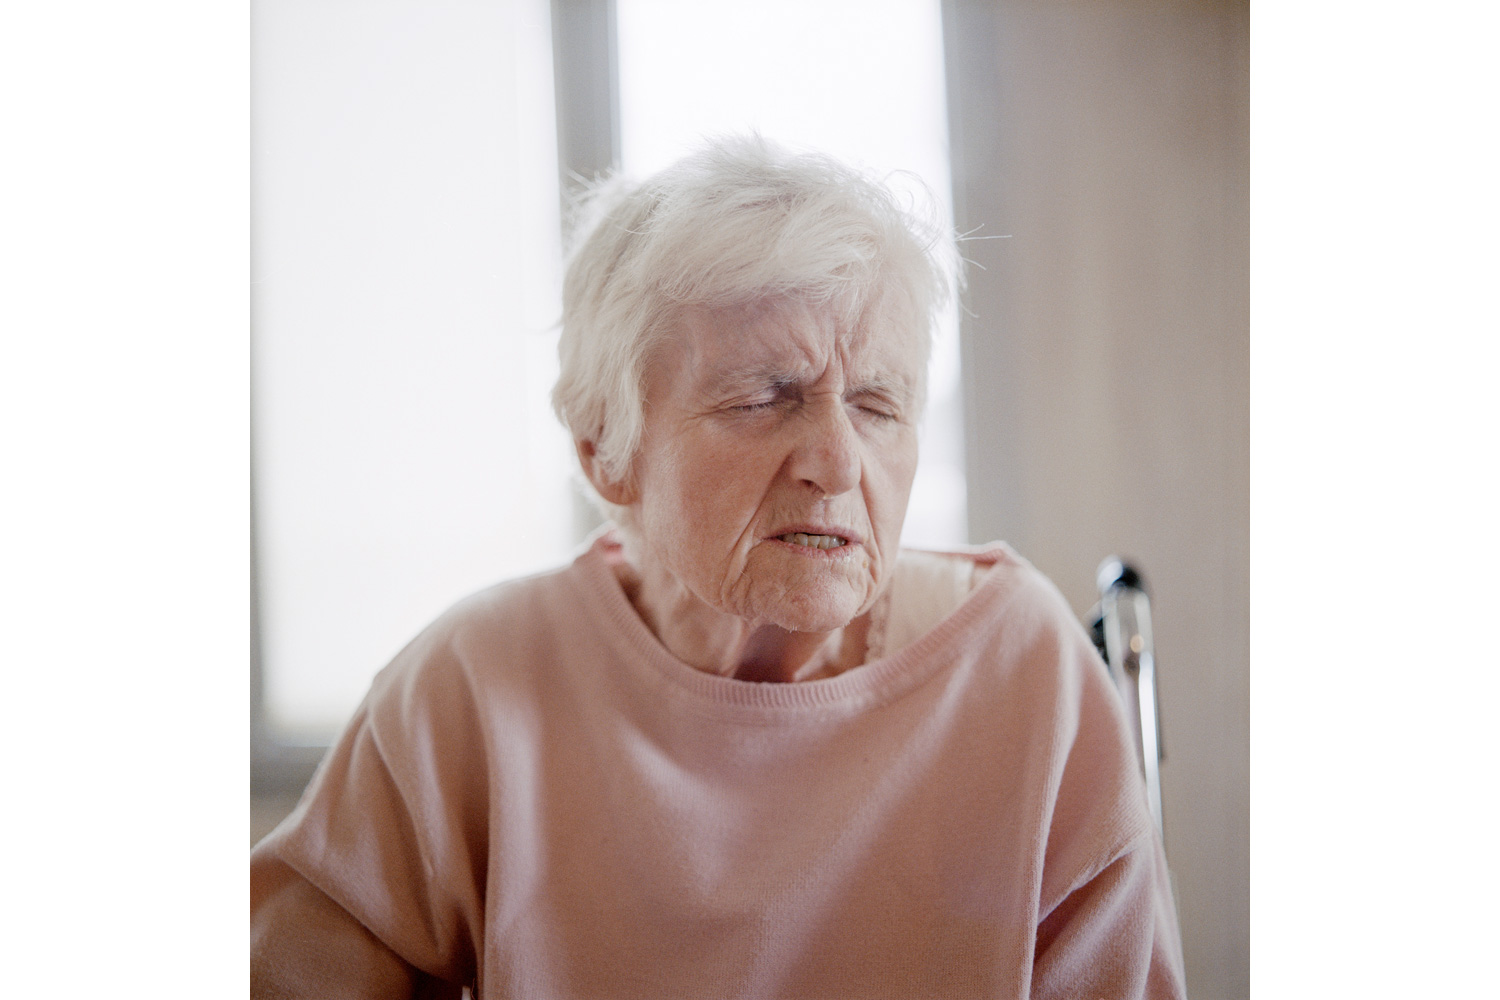 A resident in the common room of the Alzheimer's ward